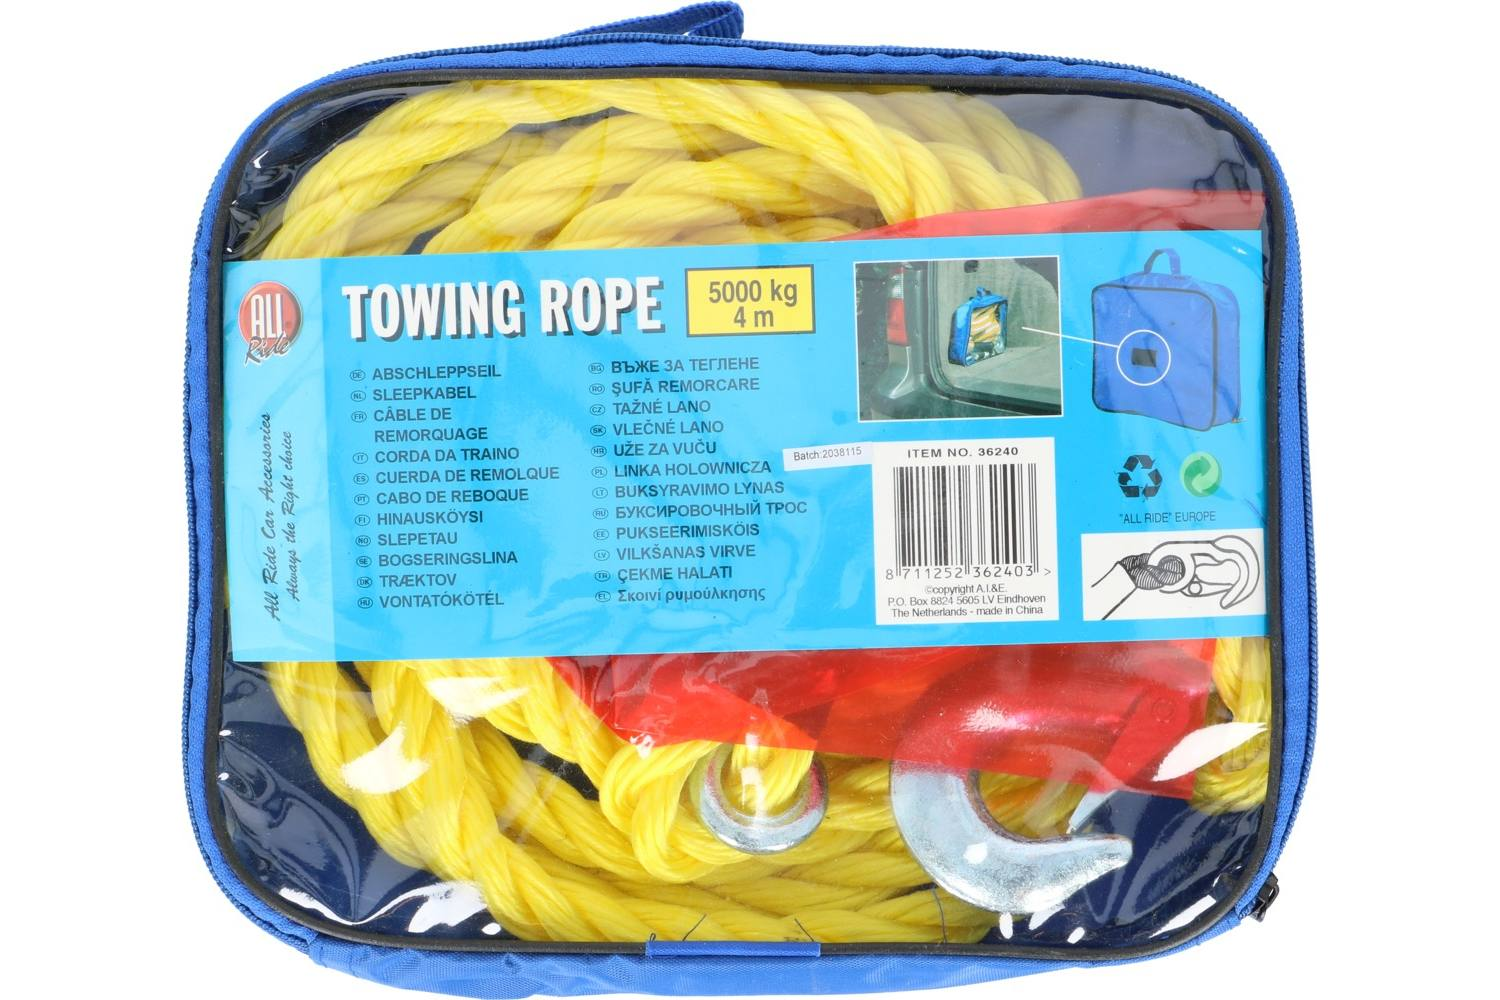 Tow rope, AllRide, 5000kg, with bag 1